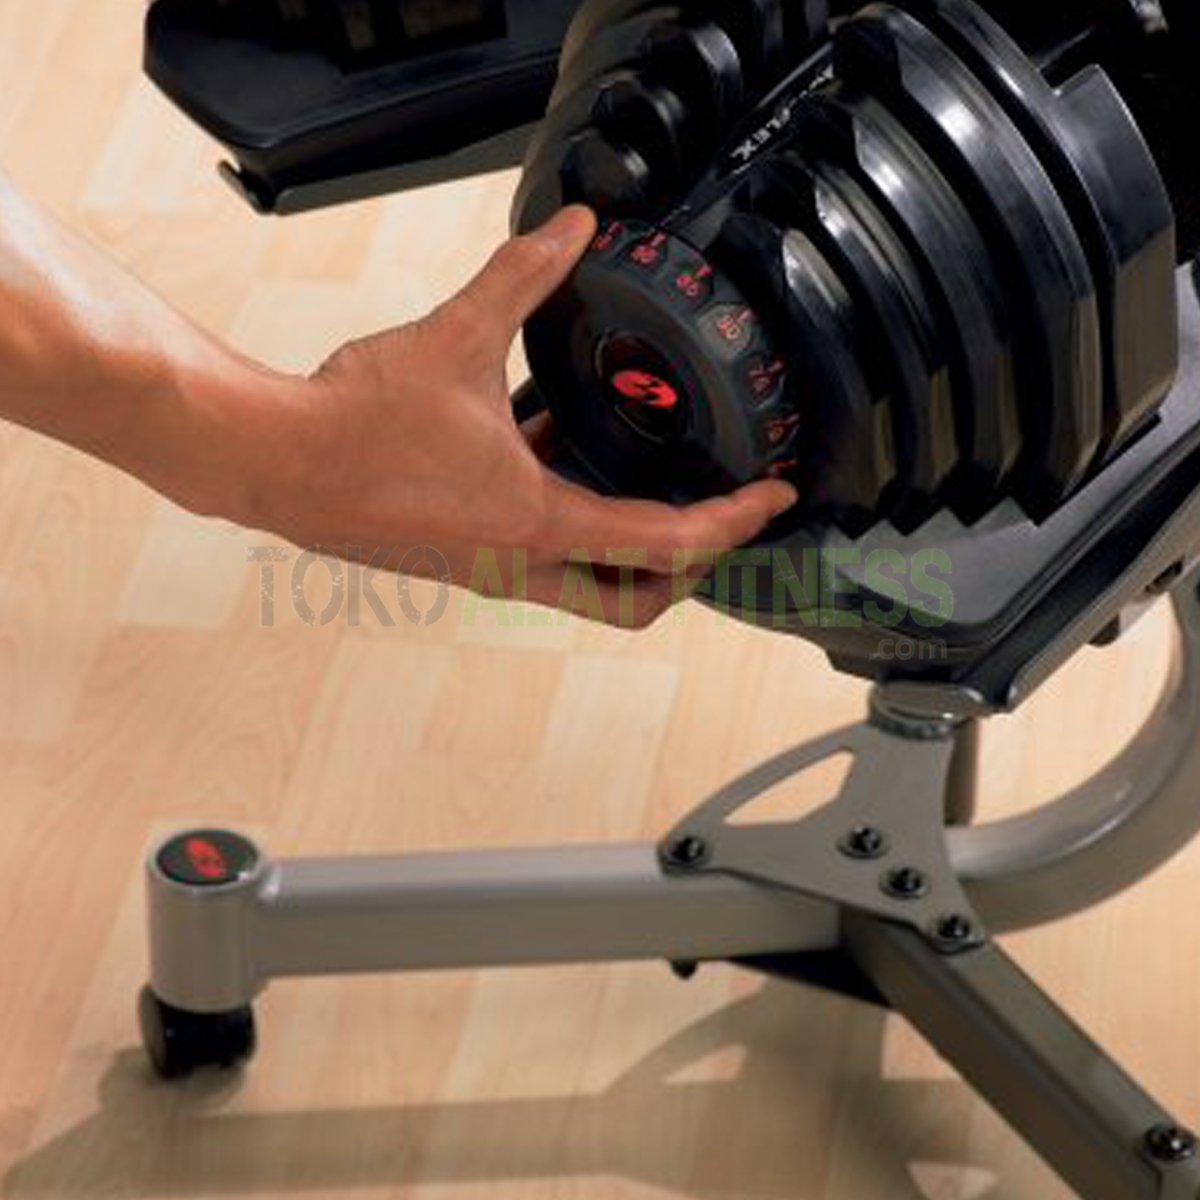 dumbell stand pemakaian - Adjustable Dumbell Stand Bowflex